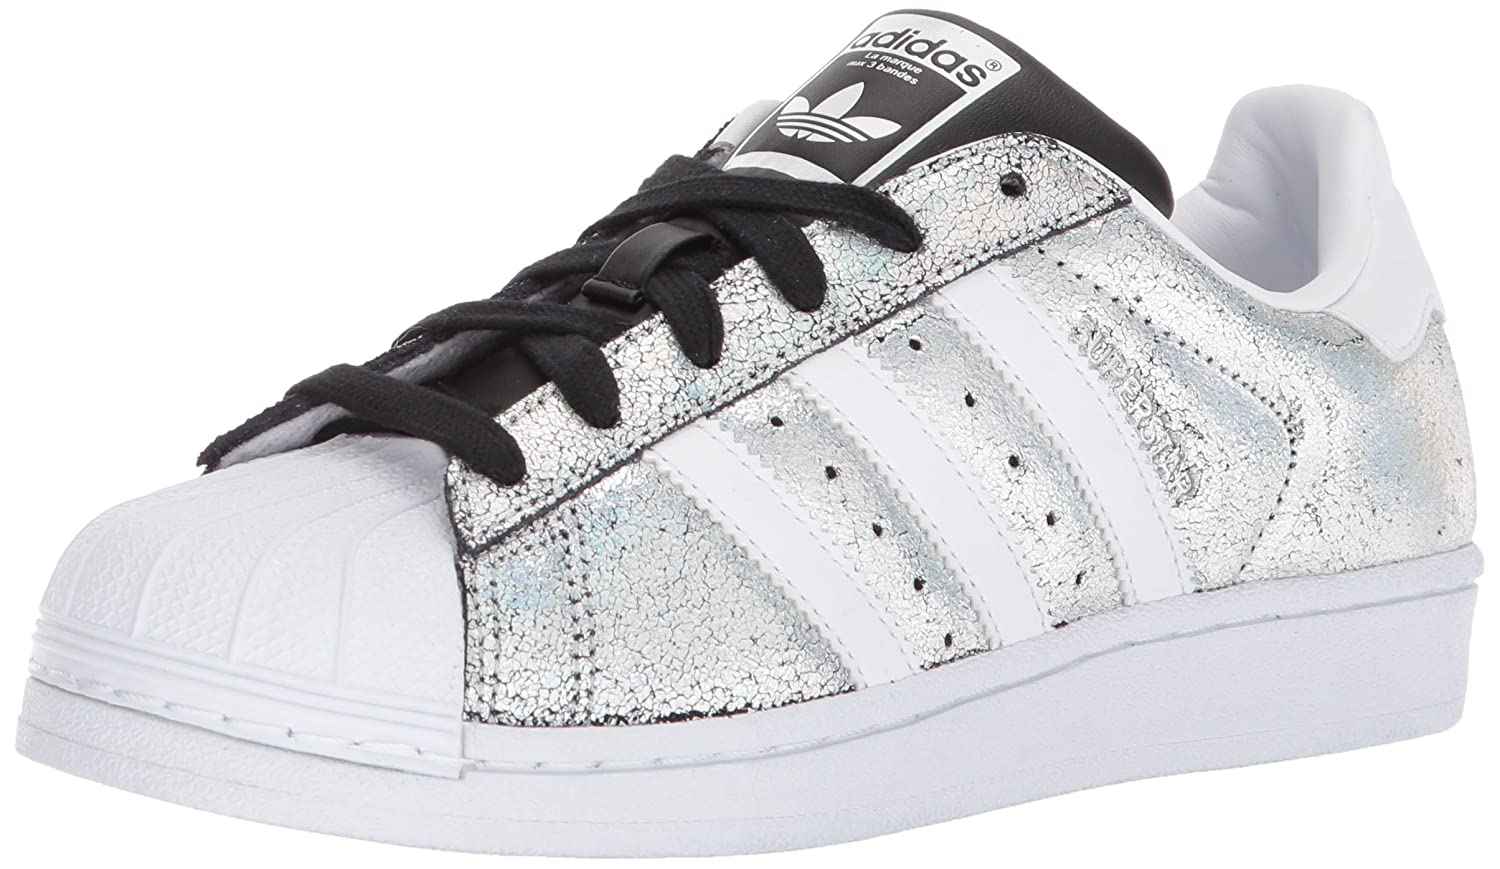 adidas Originals Women's Superstar W Sneaker B071LFR98B 9.5 B(M) US|Supplier Colour/White/Core Black